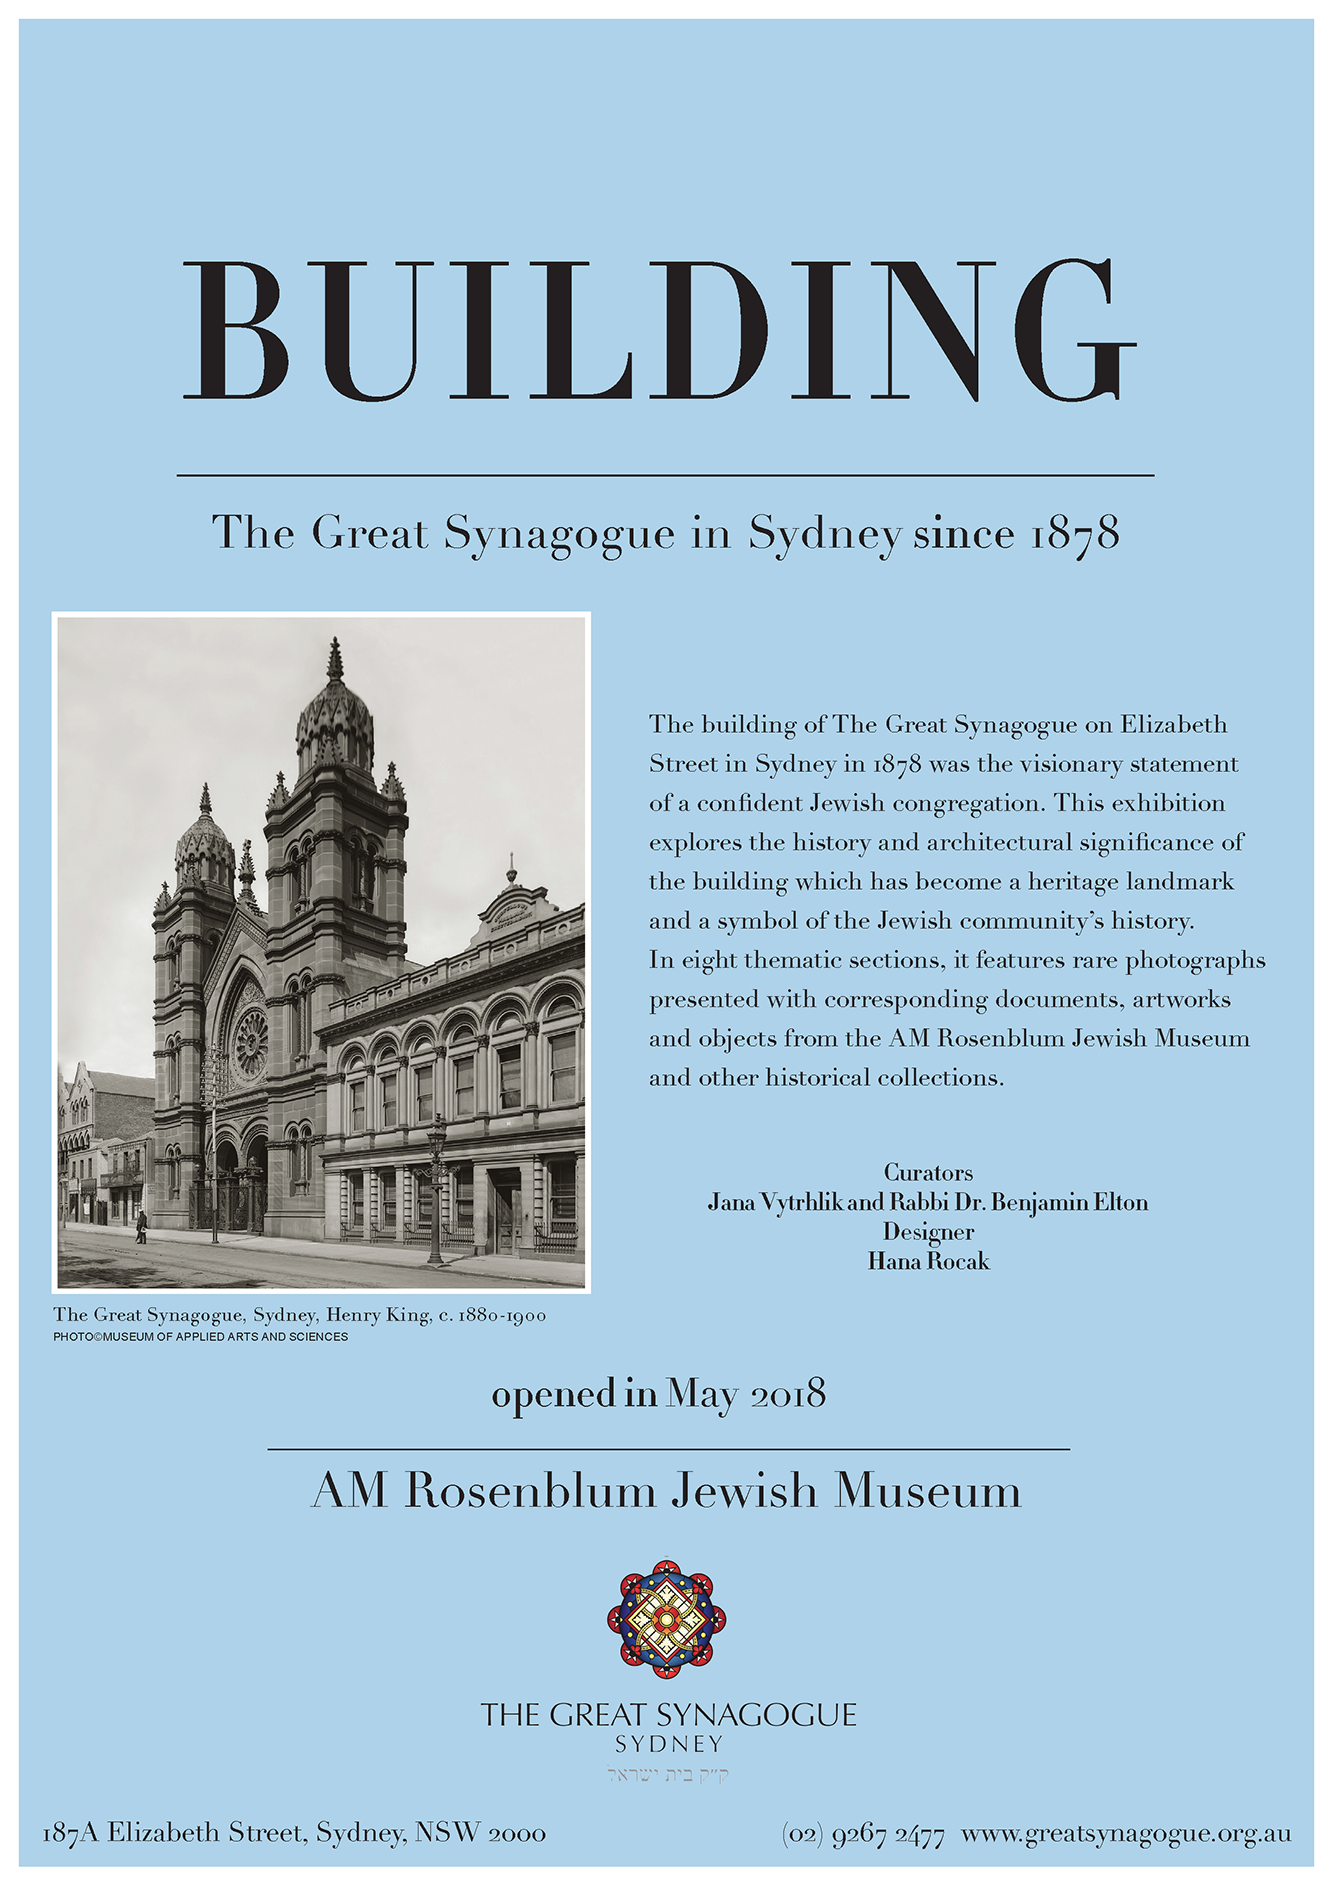 Our Collection - The Great Synagogue